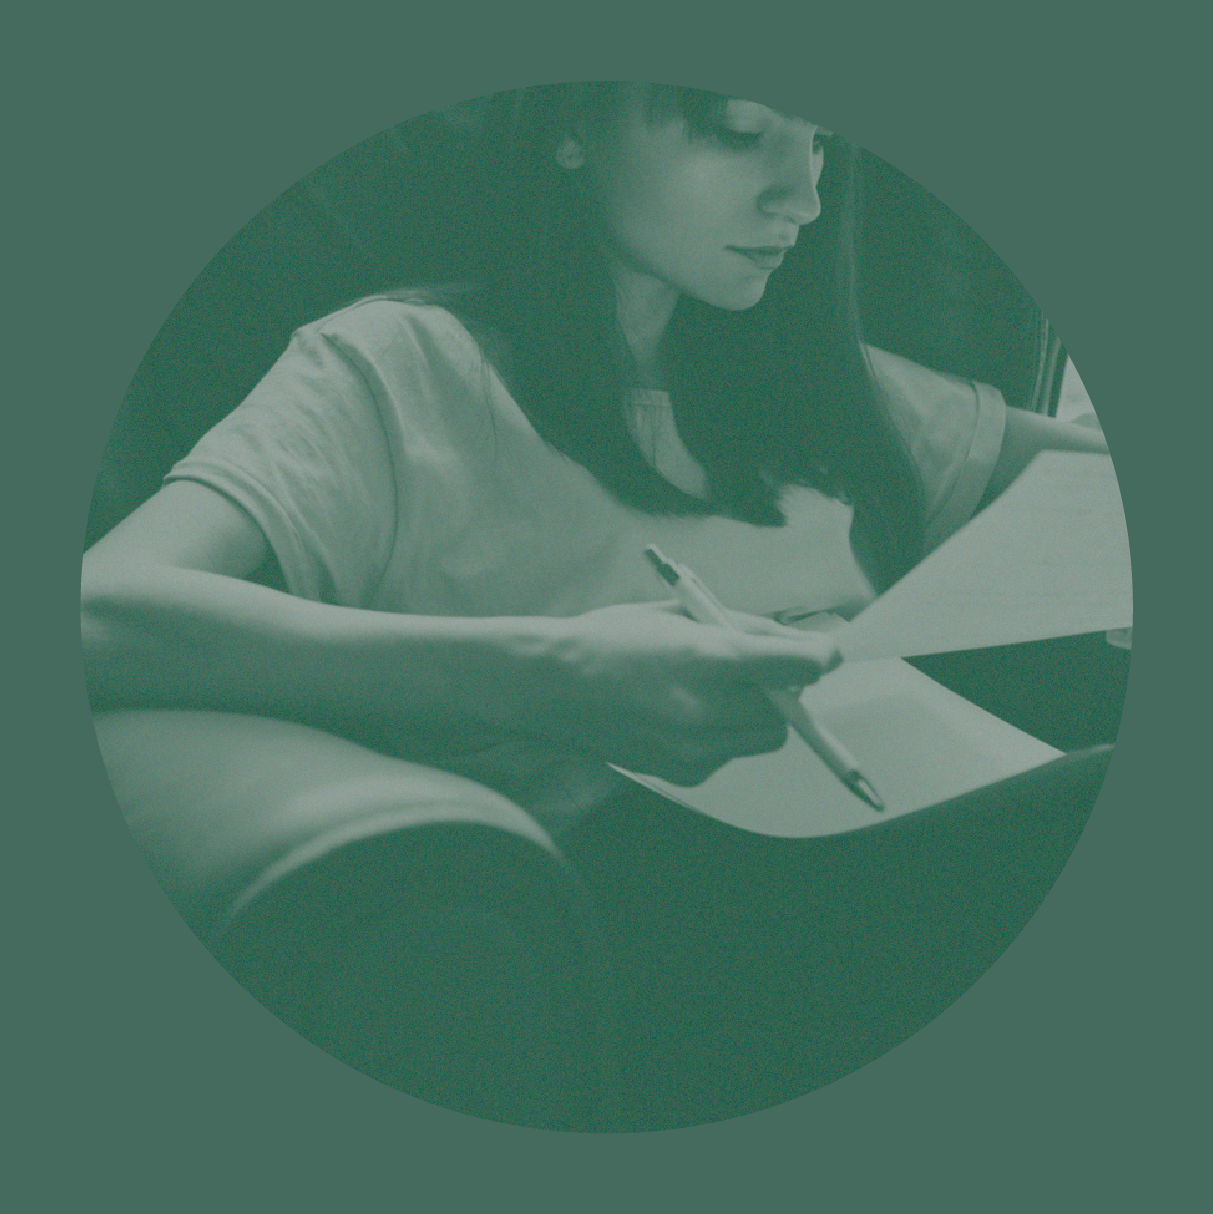 A photo of a woman sitting in a chair with papers on her lap and a pencil in her hand.